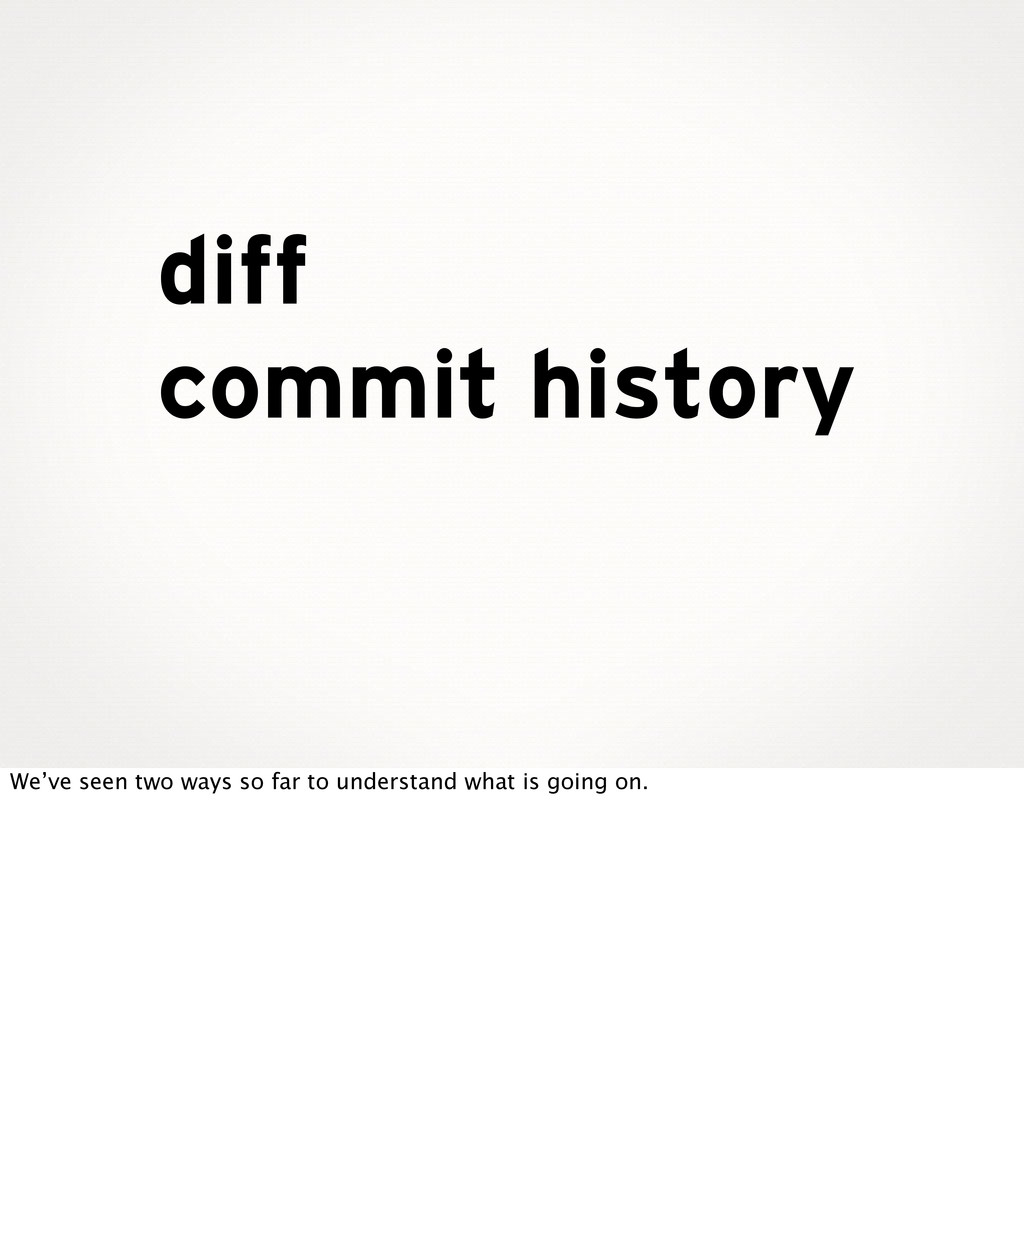 diff commit history We've seen two ways so far ...